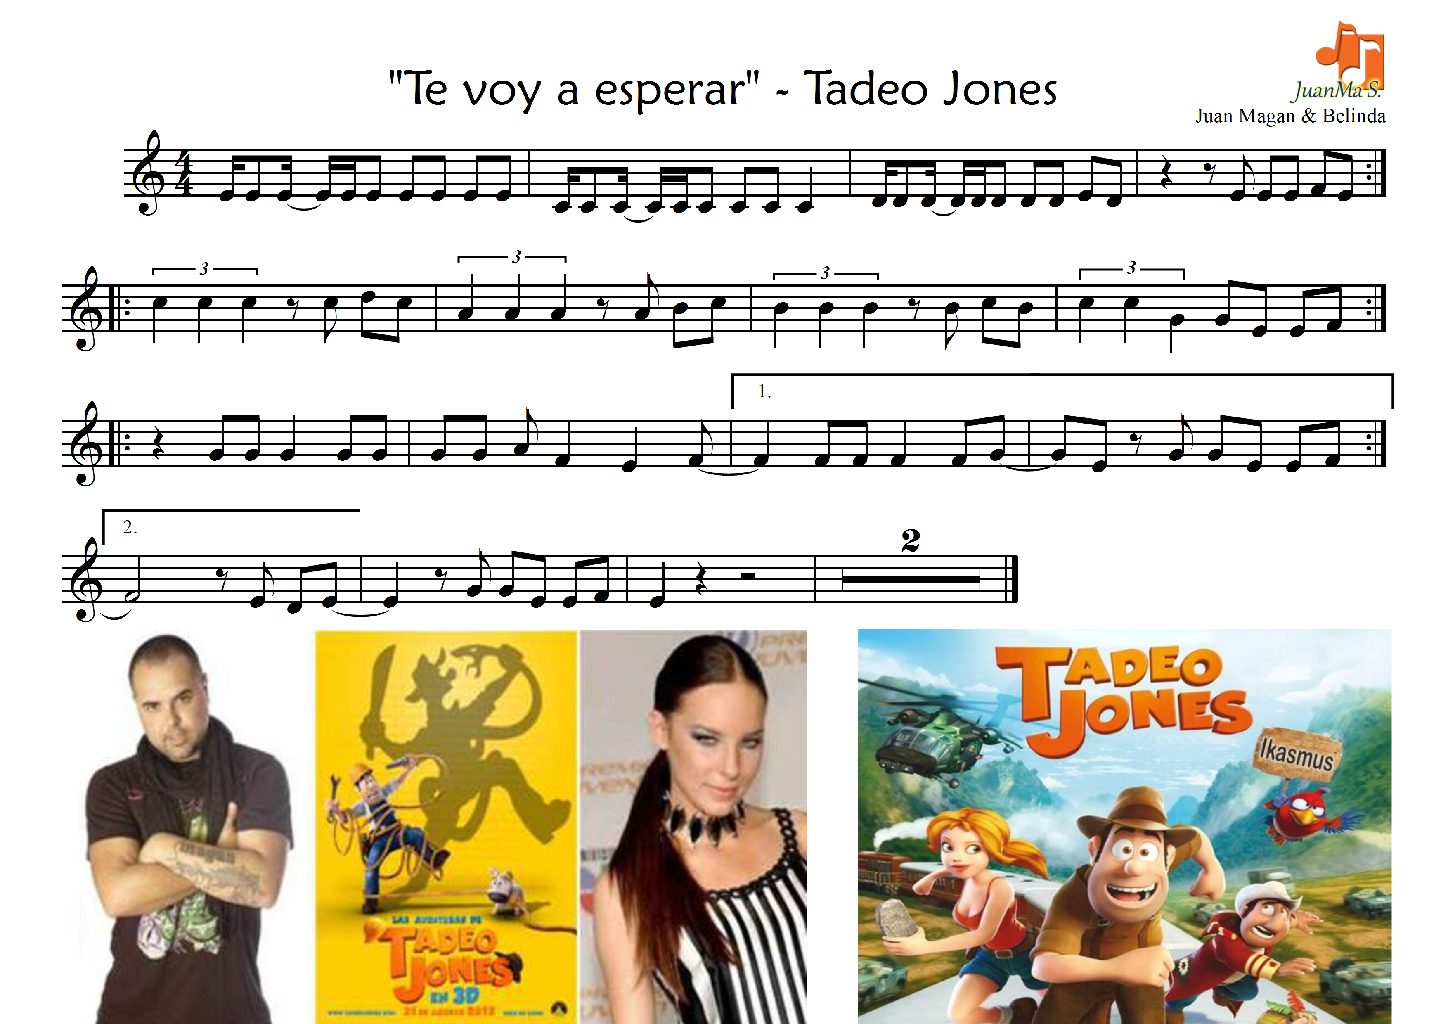 http://ikasmus.wix.com/6-maila#!__tadeo-jones